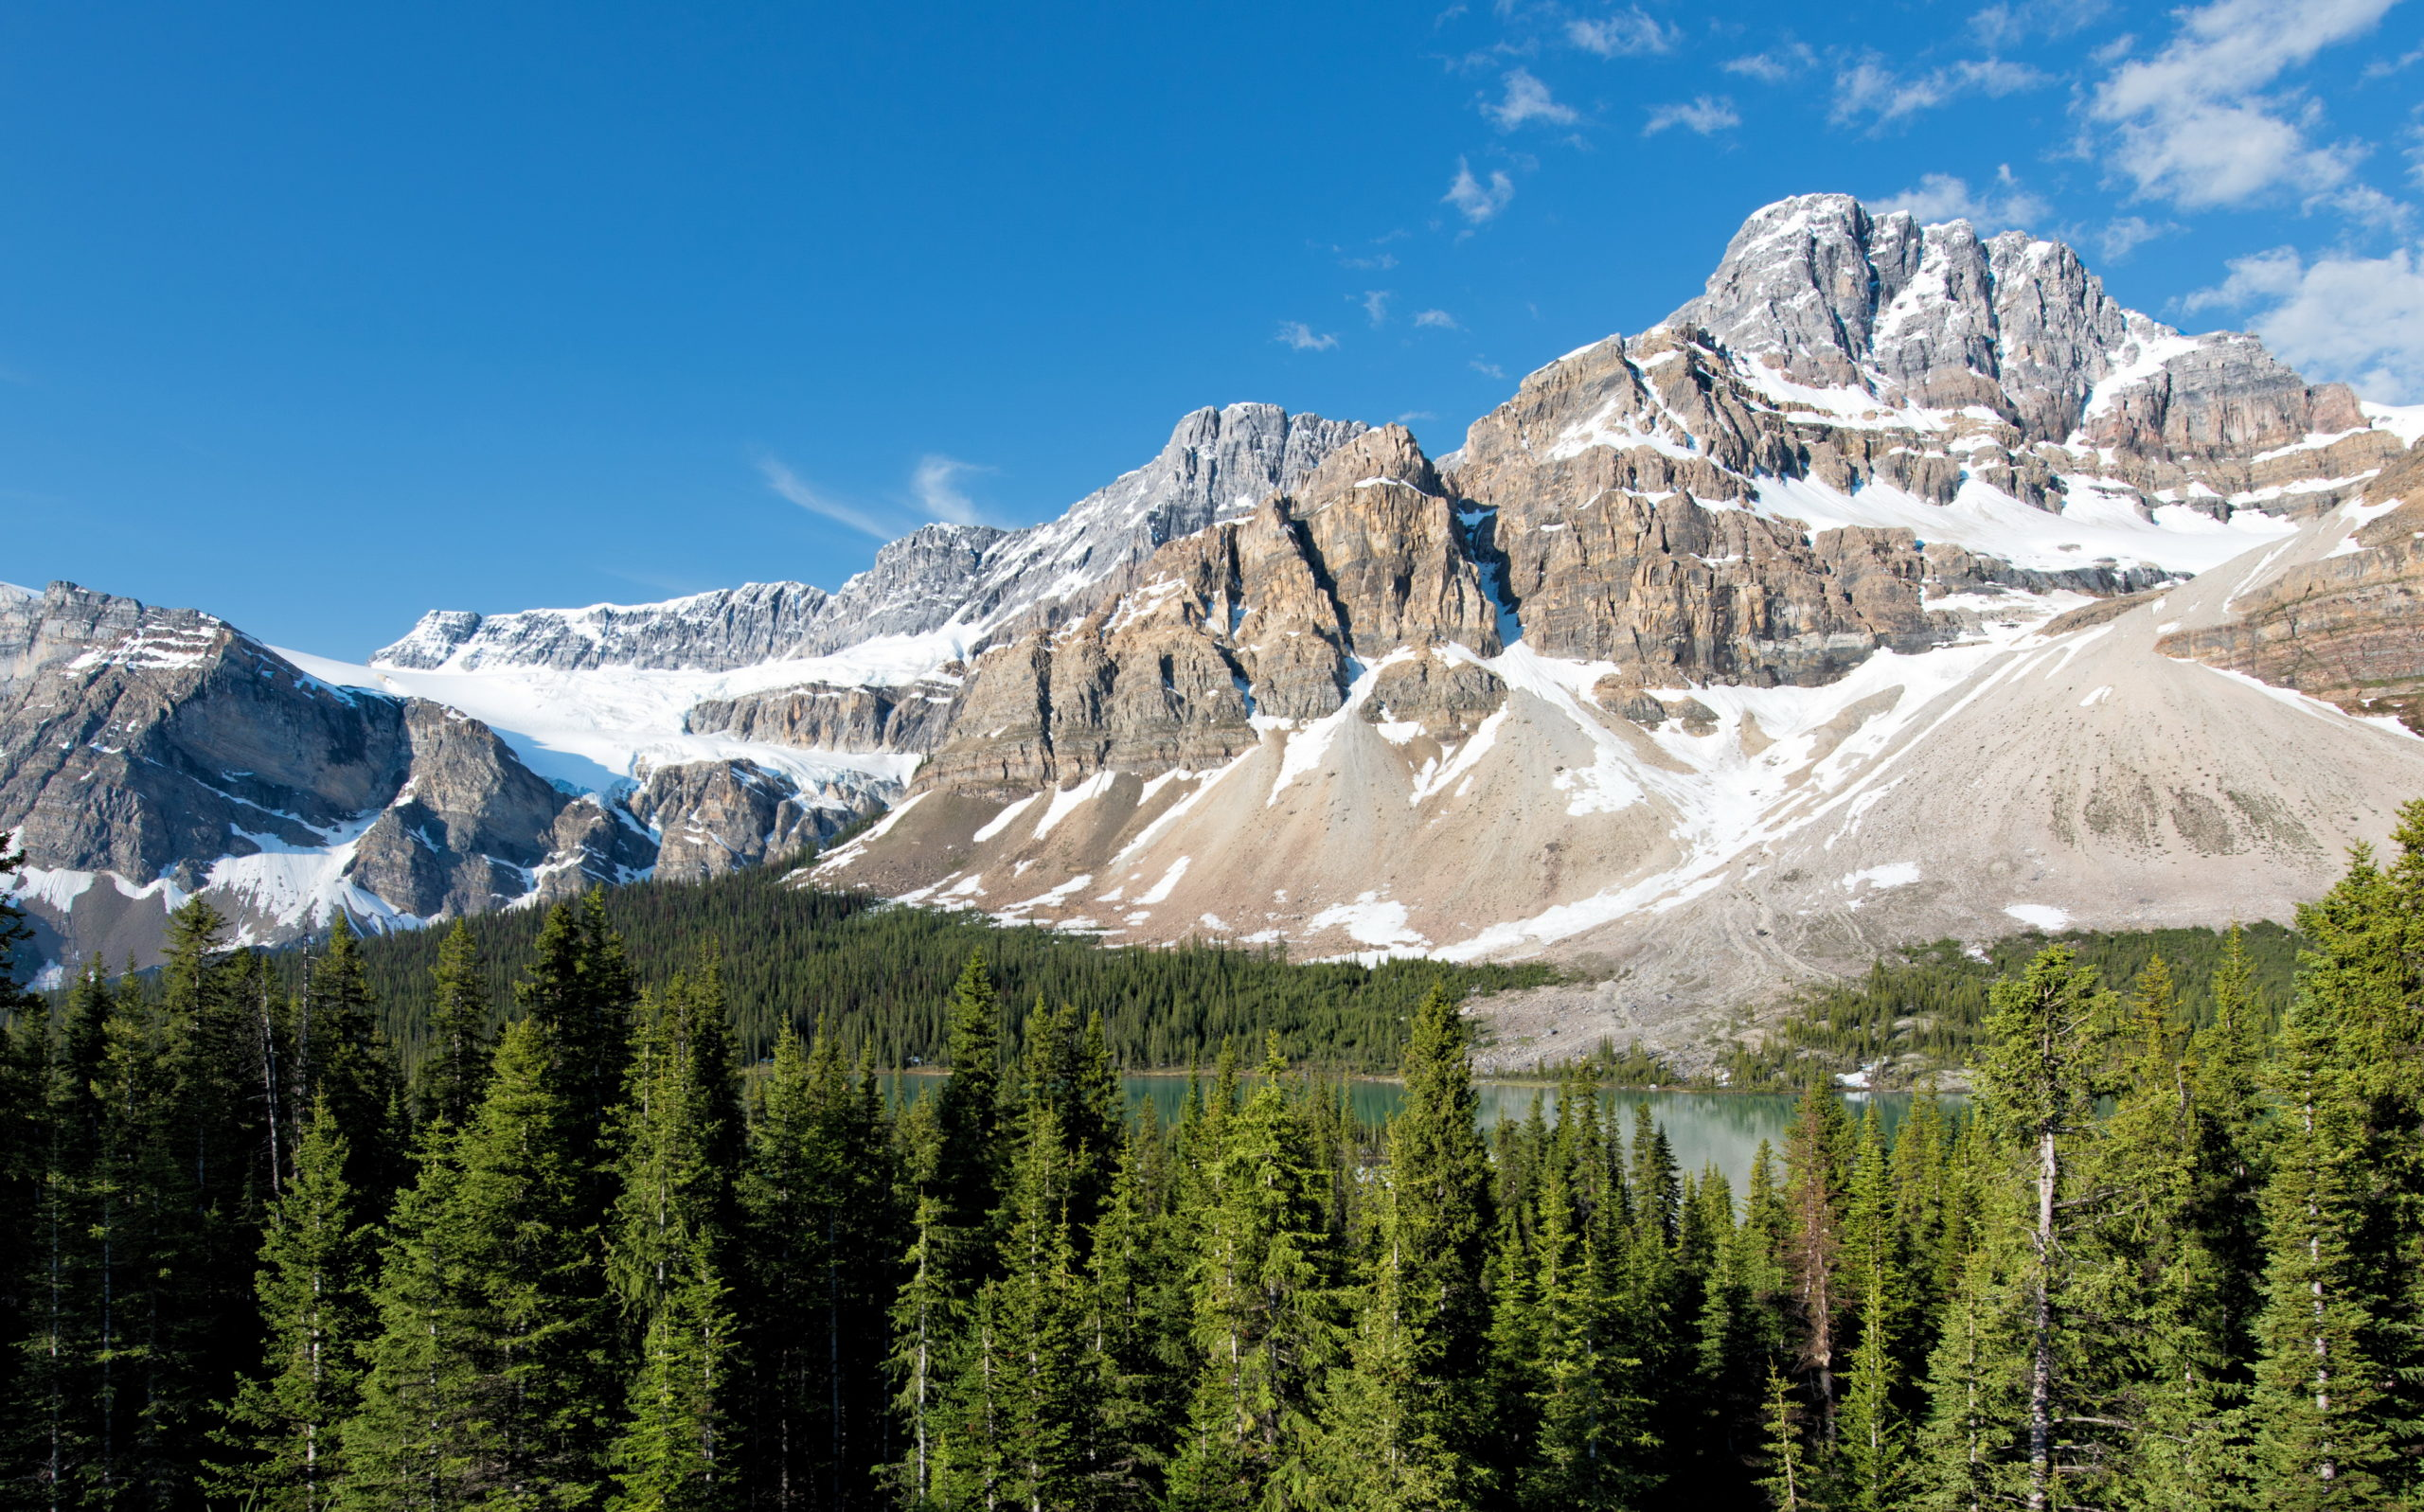 Parks Canada Mountains Scenery Banff Crag Nature Wallpaper